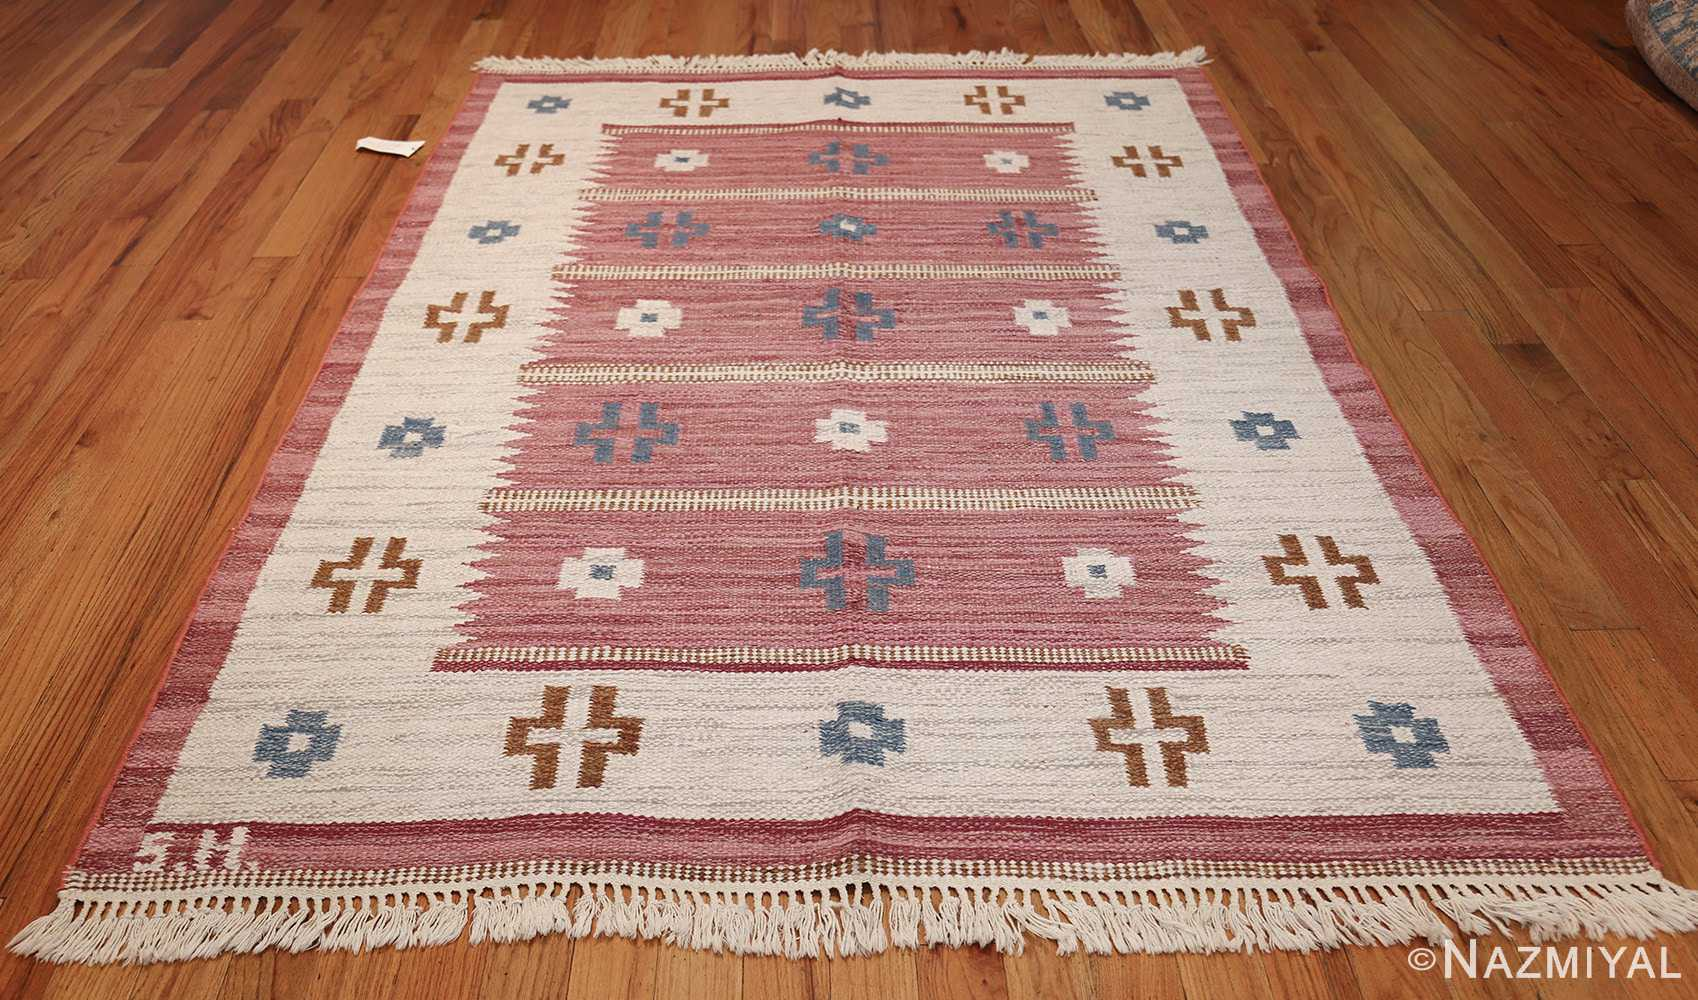 Vintage Swedish Kilim by Svensk Hemslojd 48049 Whole Nazmiyal